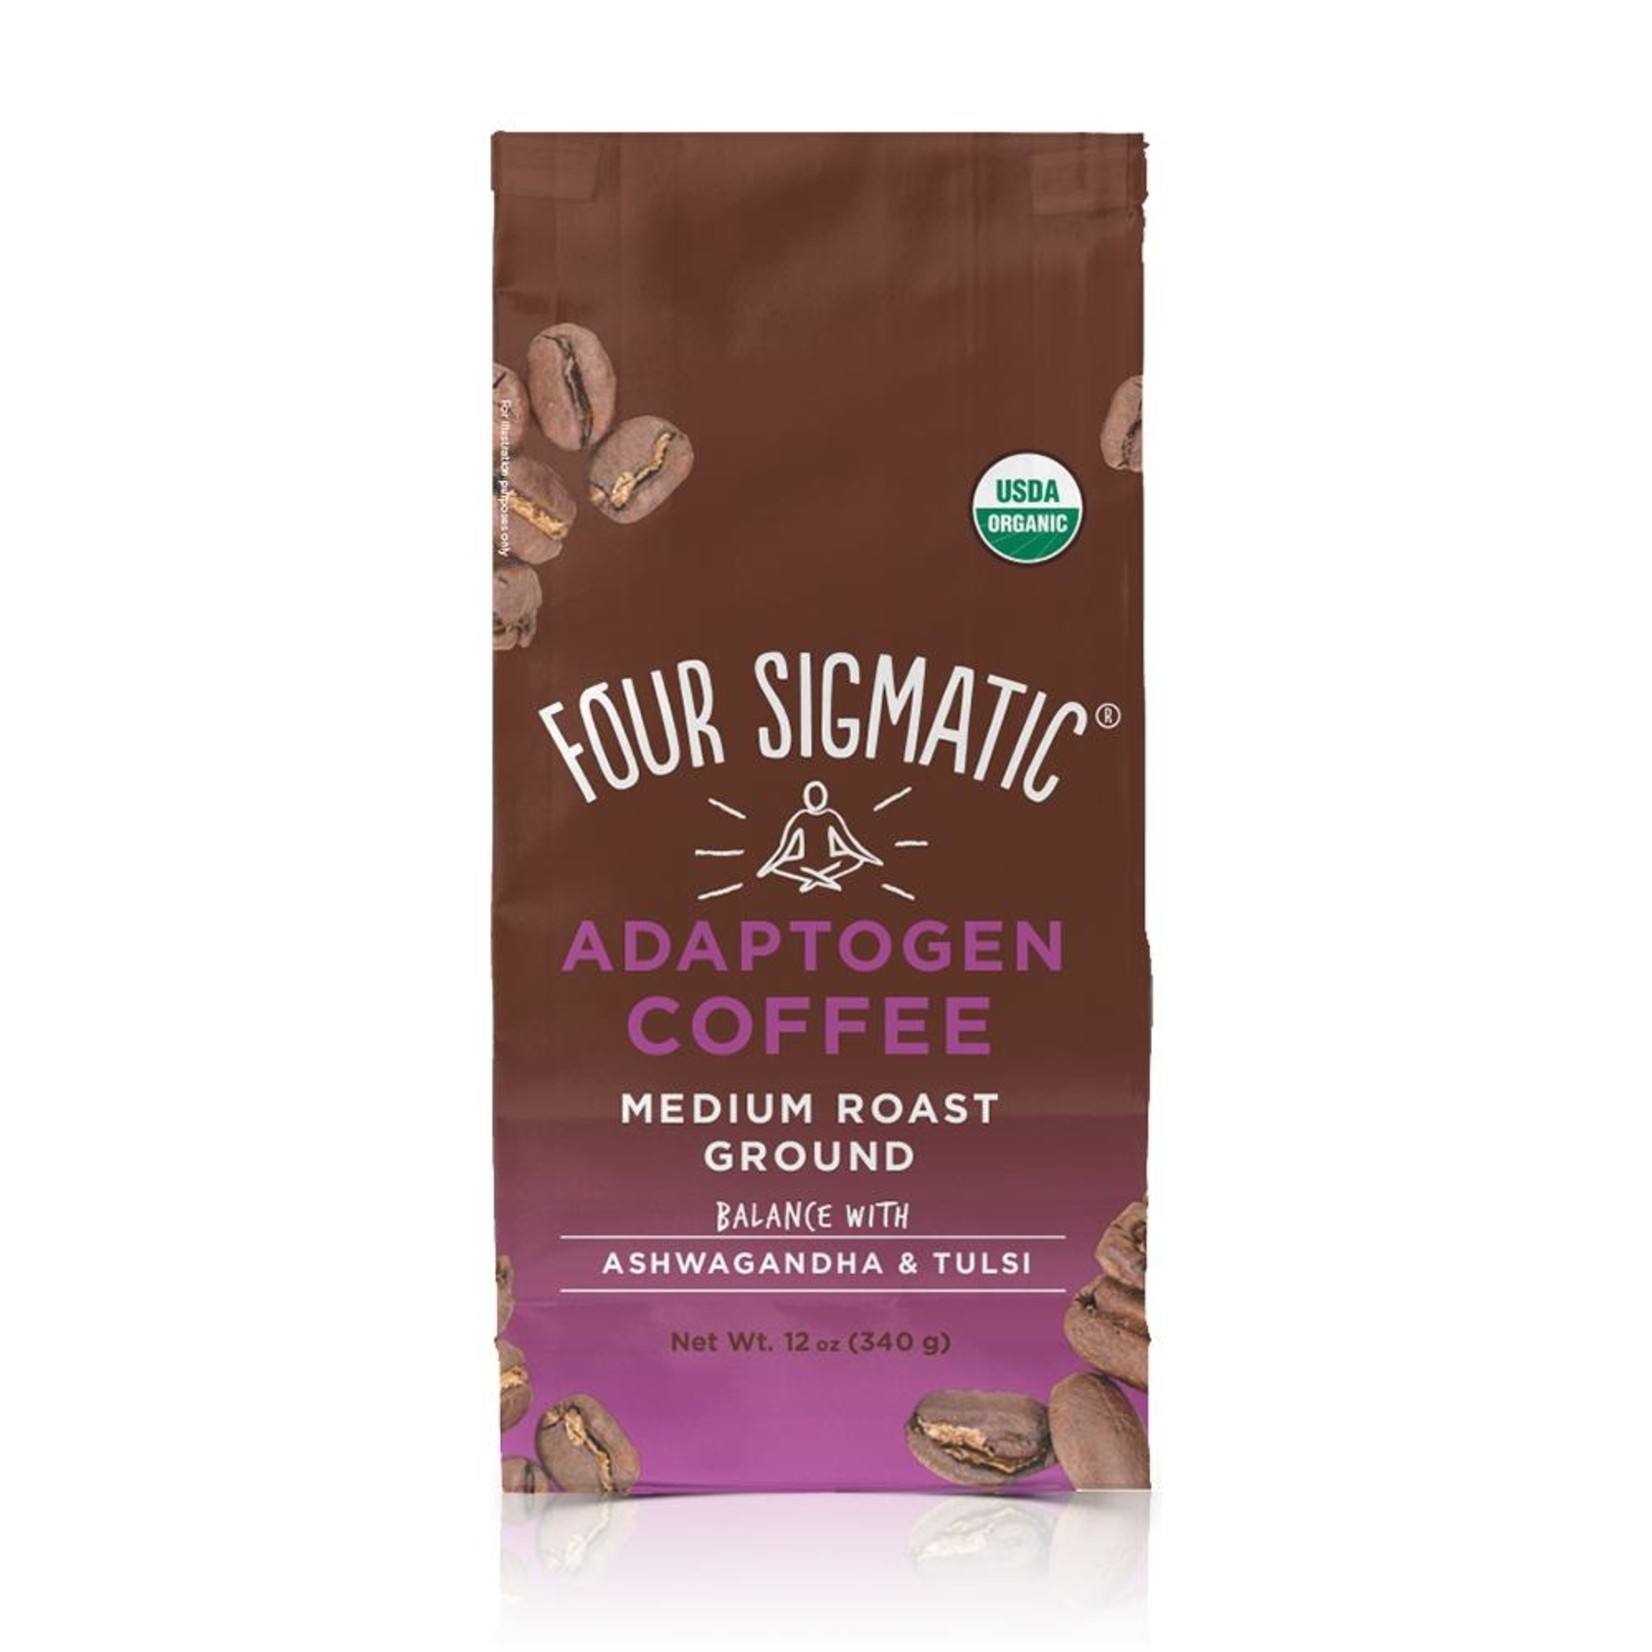 Four Sigmatic Adaptogen Coffee Ground 12oz